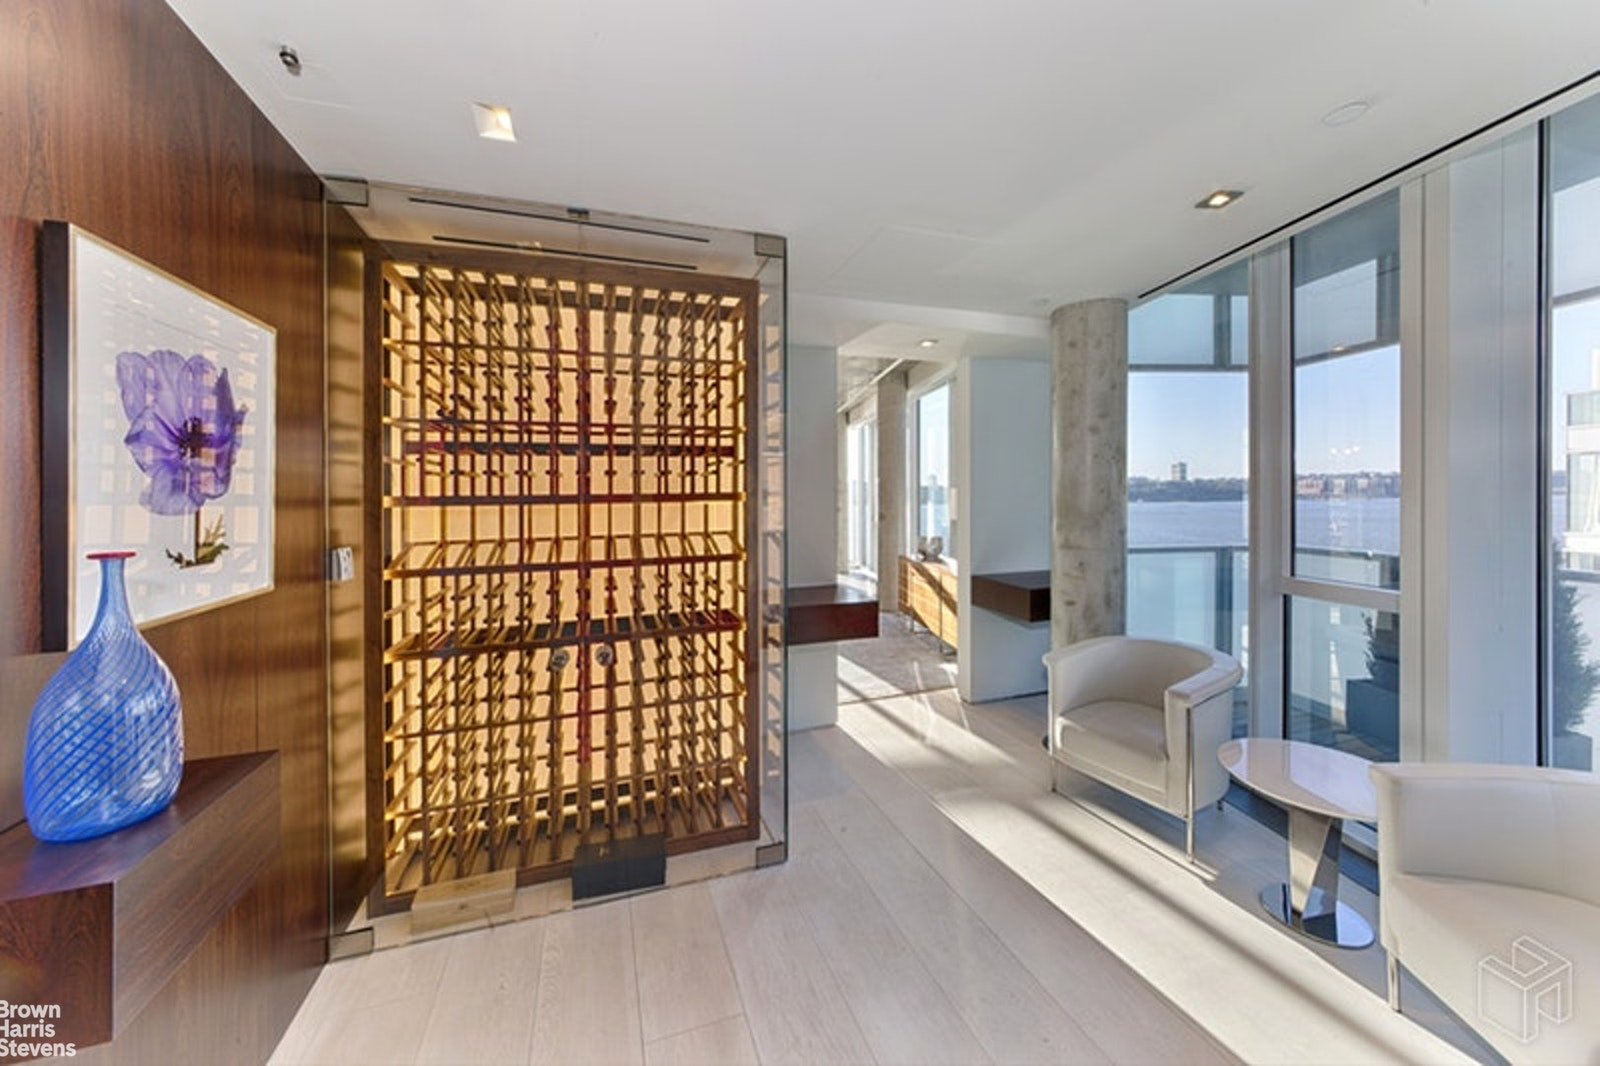 173 Perry Street 6/7, West Village, NYC, 10014, $9,750,000, Property For Sale, Halstead Real Estate, Photo 8